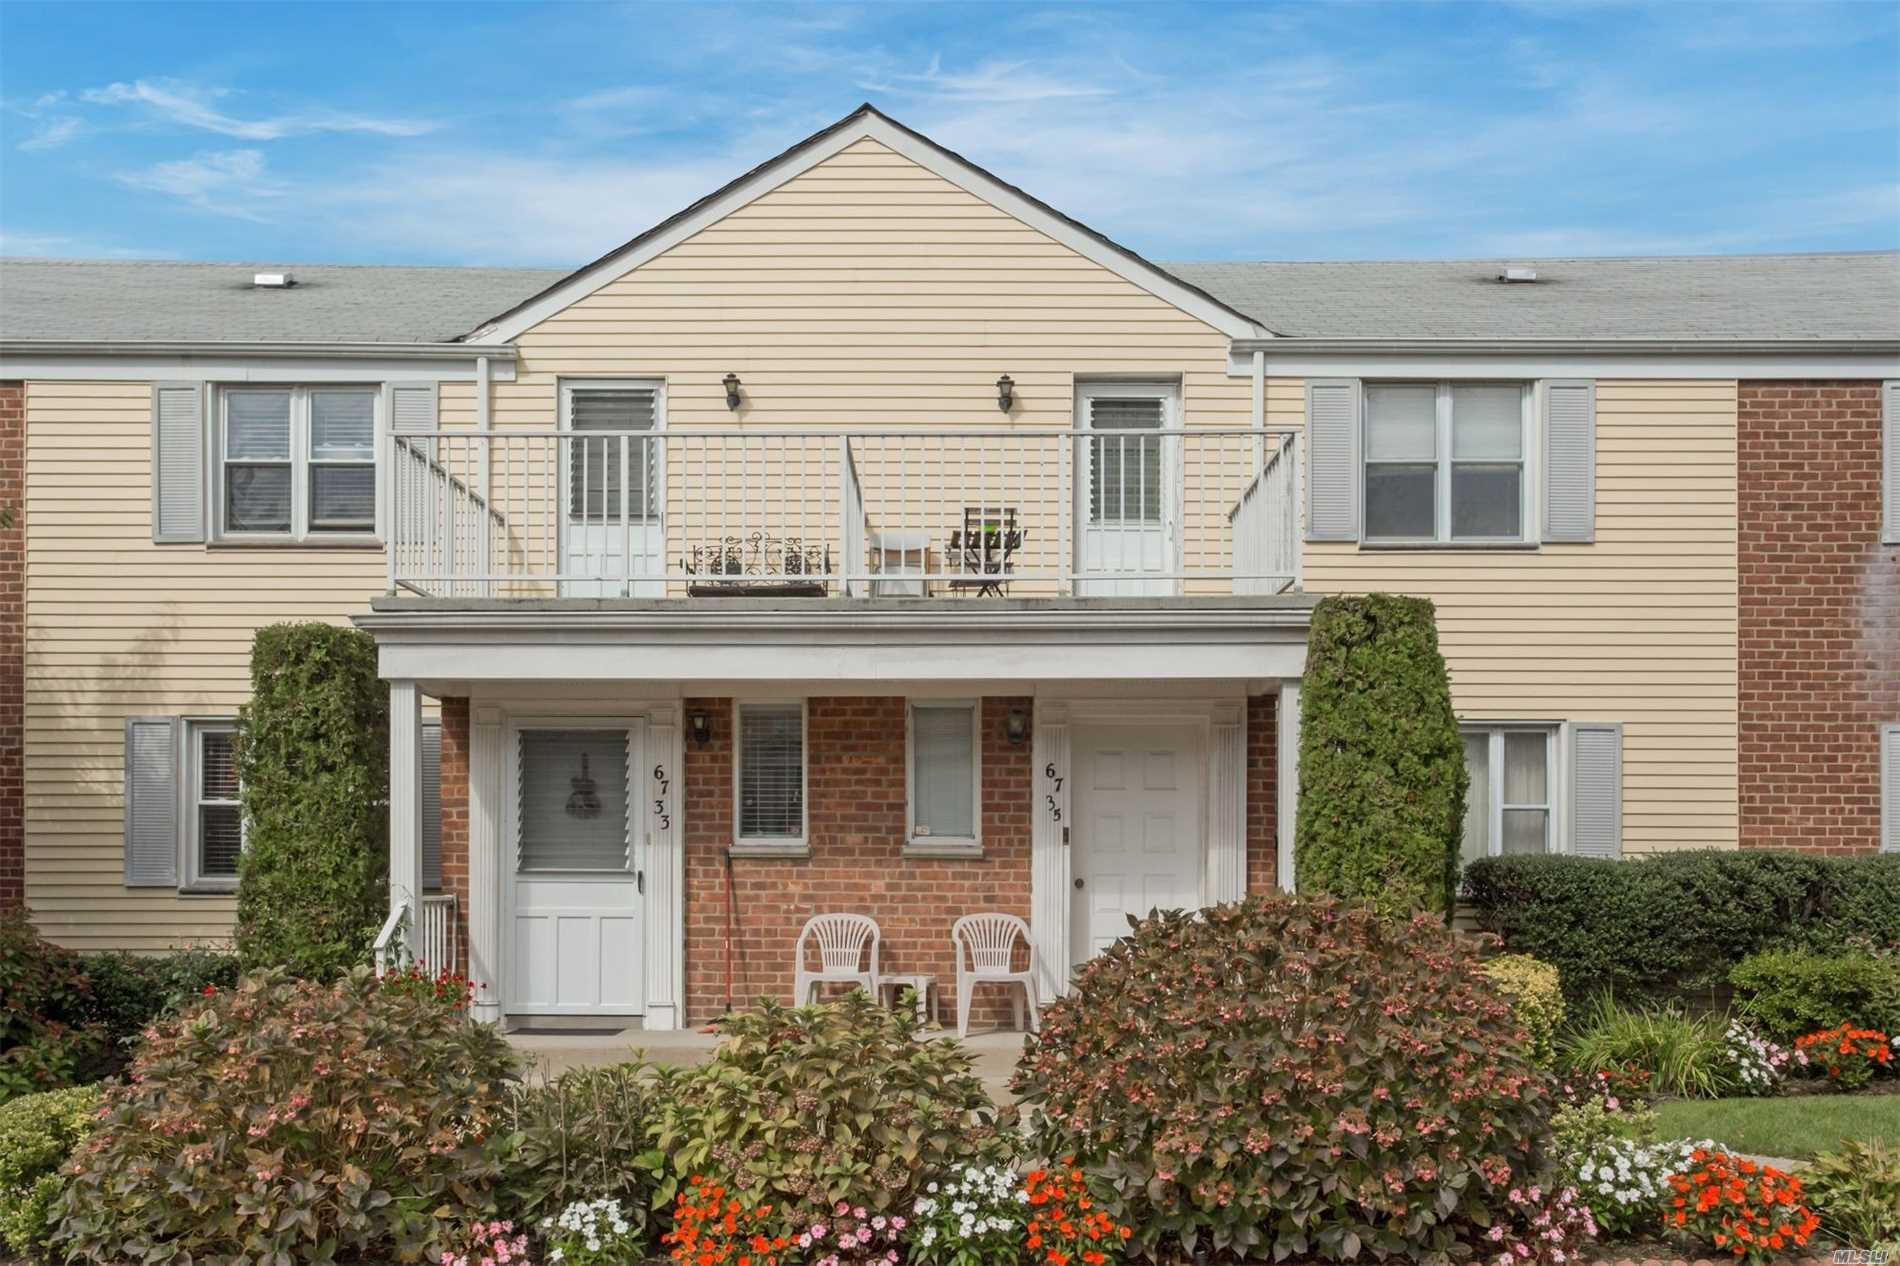 Junior 4 With Lots Of Space, Prime Cul-De-Sac 1st Floor Reserved Parking Spot 180 Steps From Unit 2 Blocks To Alley Pond Park